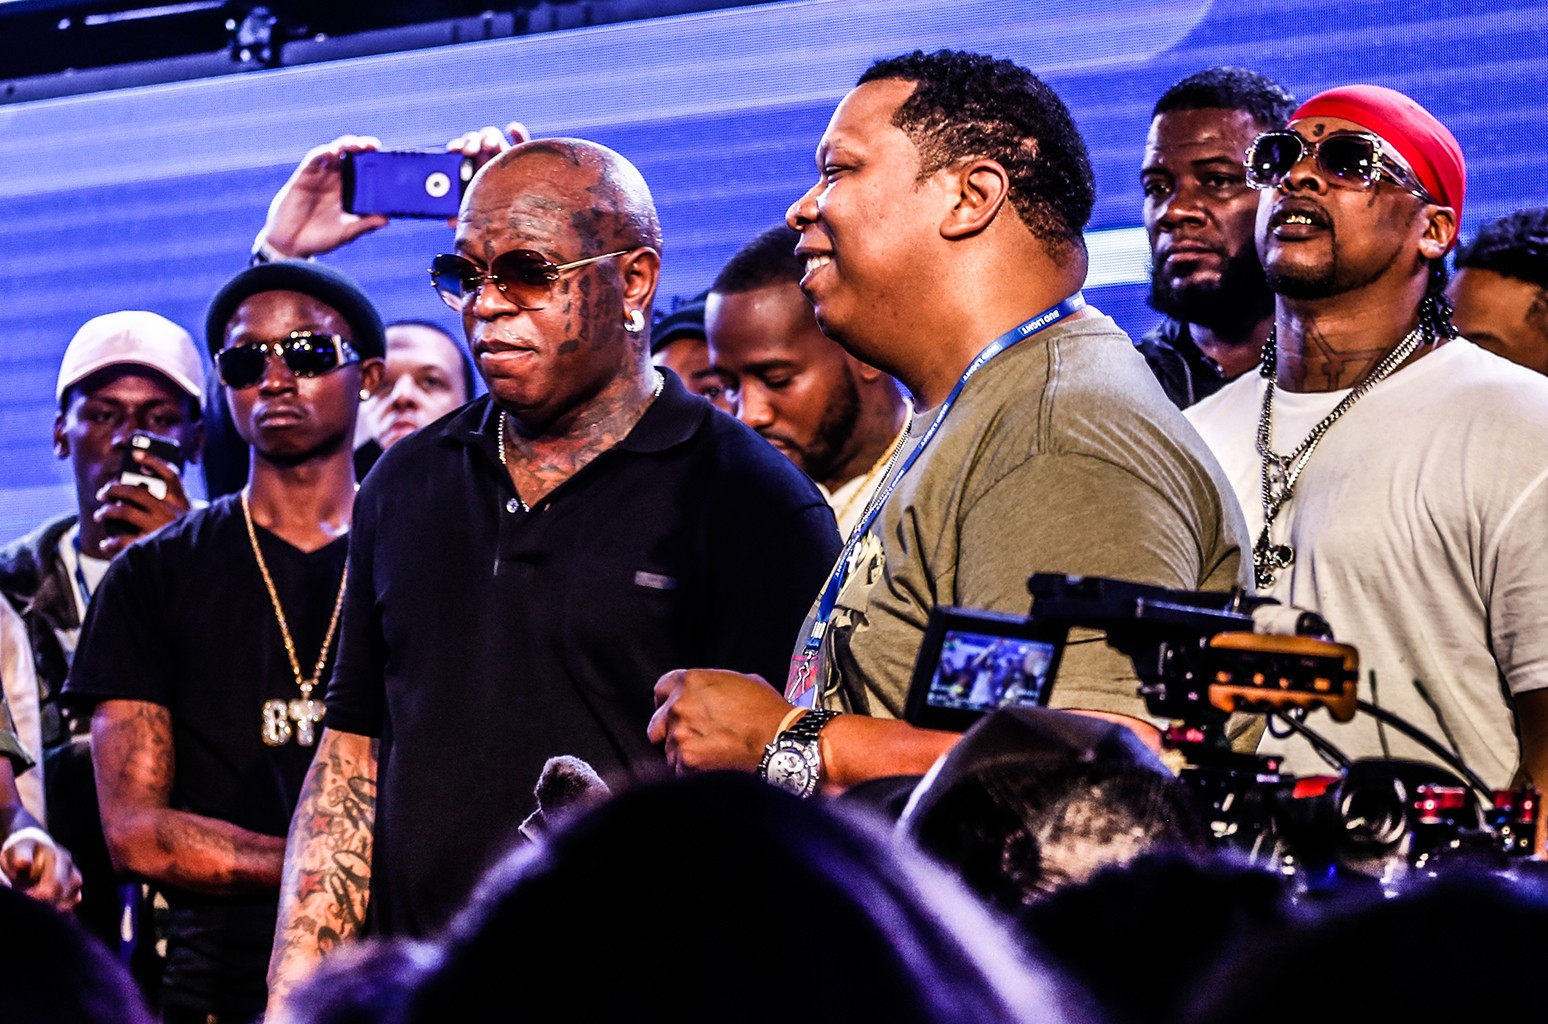 Birdman and Mannie Fresh perform during All Star Weekend with the Bud Light Crew HQ on Feb. 18, 2017 in New Orleans.